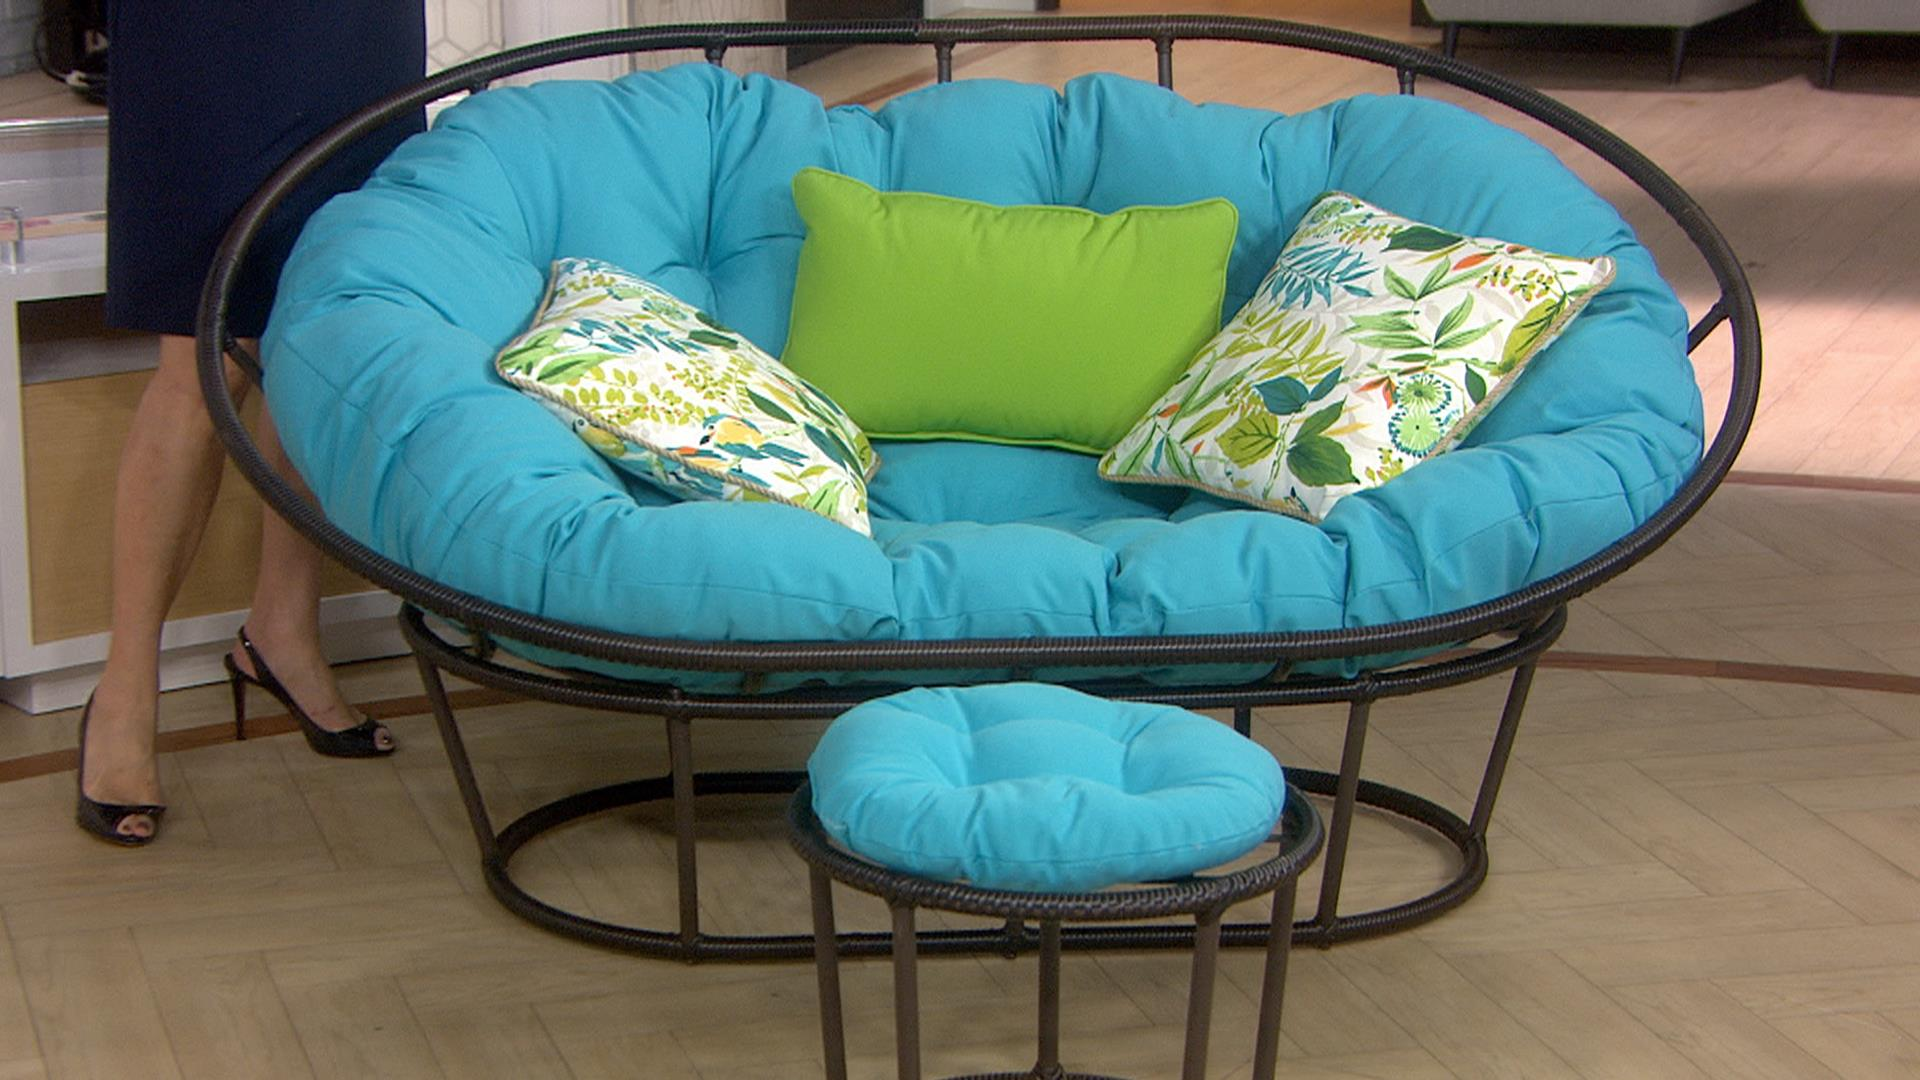 Magnificent Give It Away 5 Fourth Hour Viewers Win Outdoor Papasan Chairs Andrewgaddart Wooden Chair Designs For Living Room Andrewgaddartcom